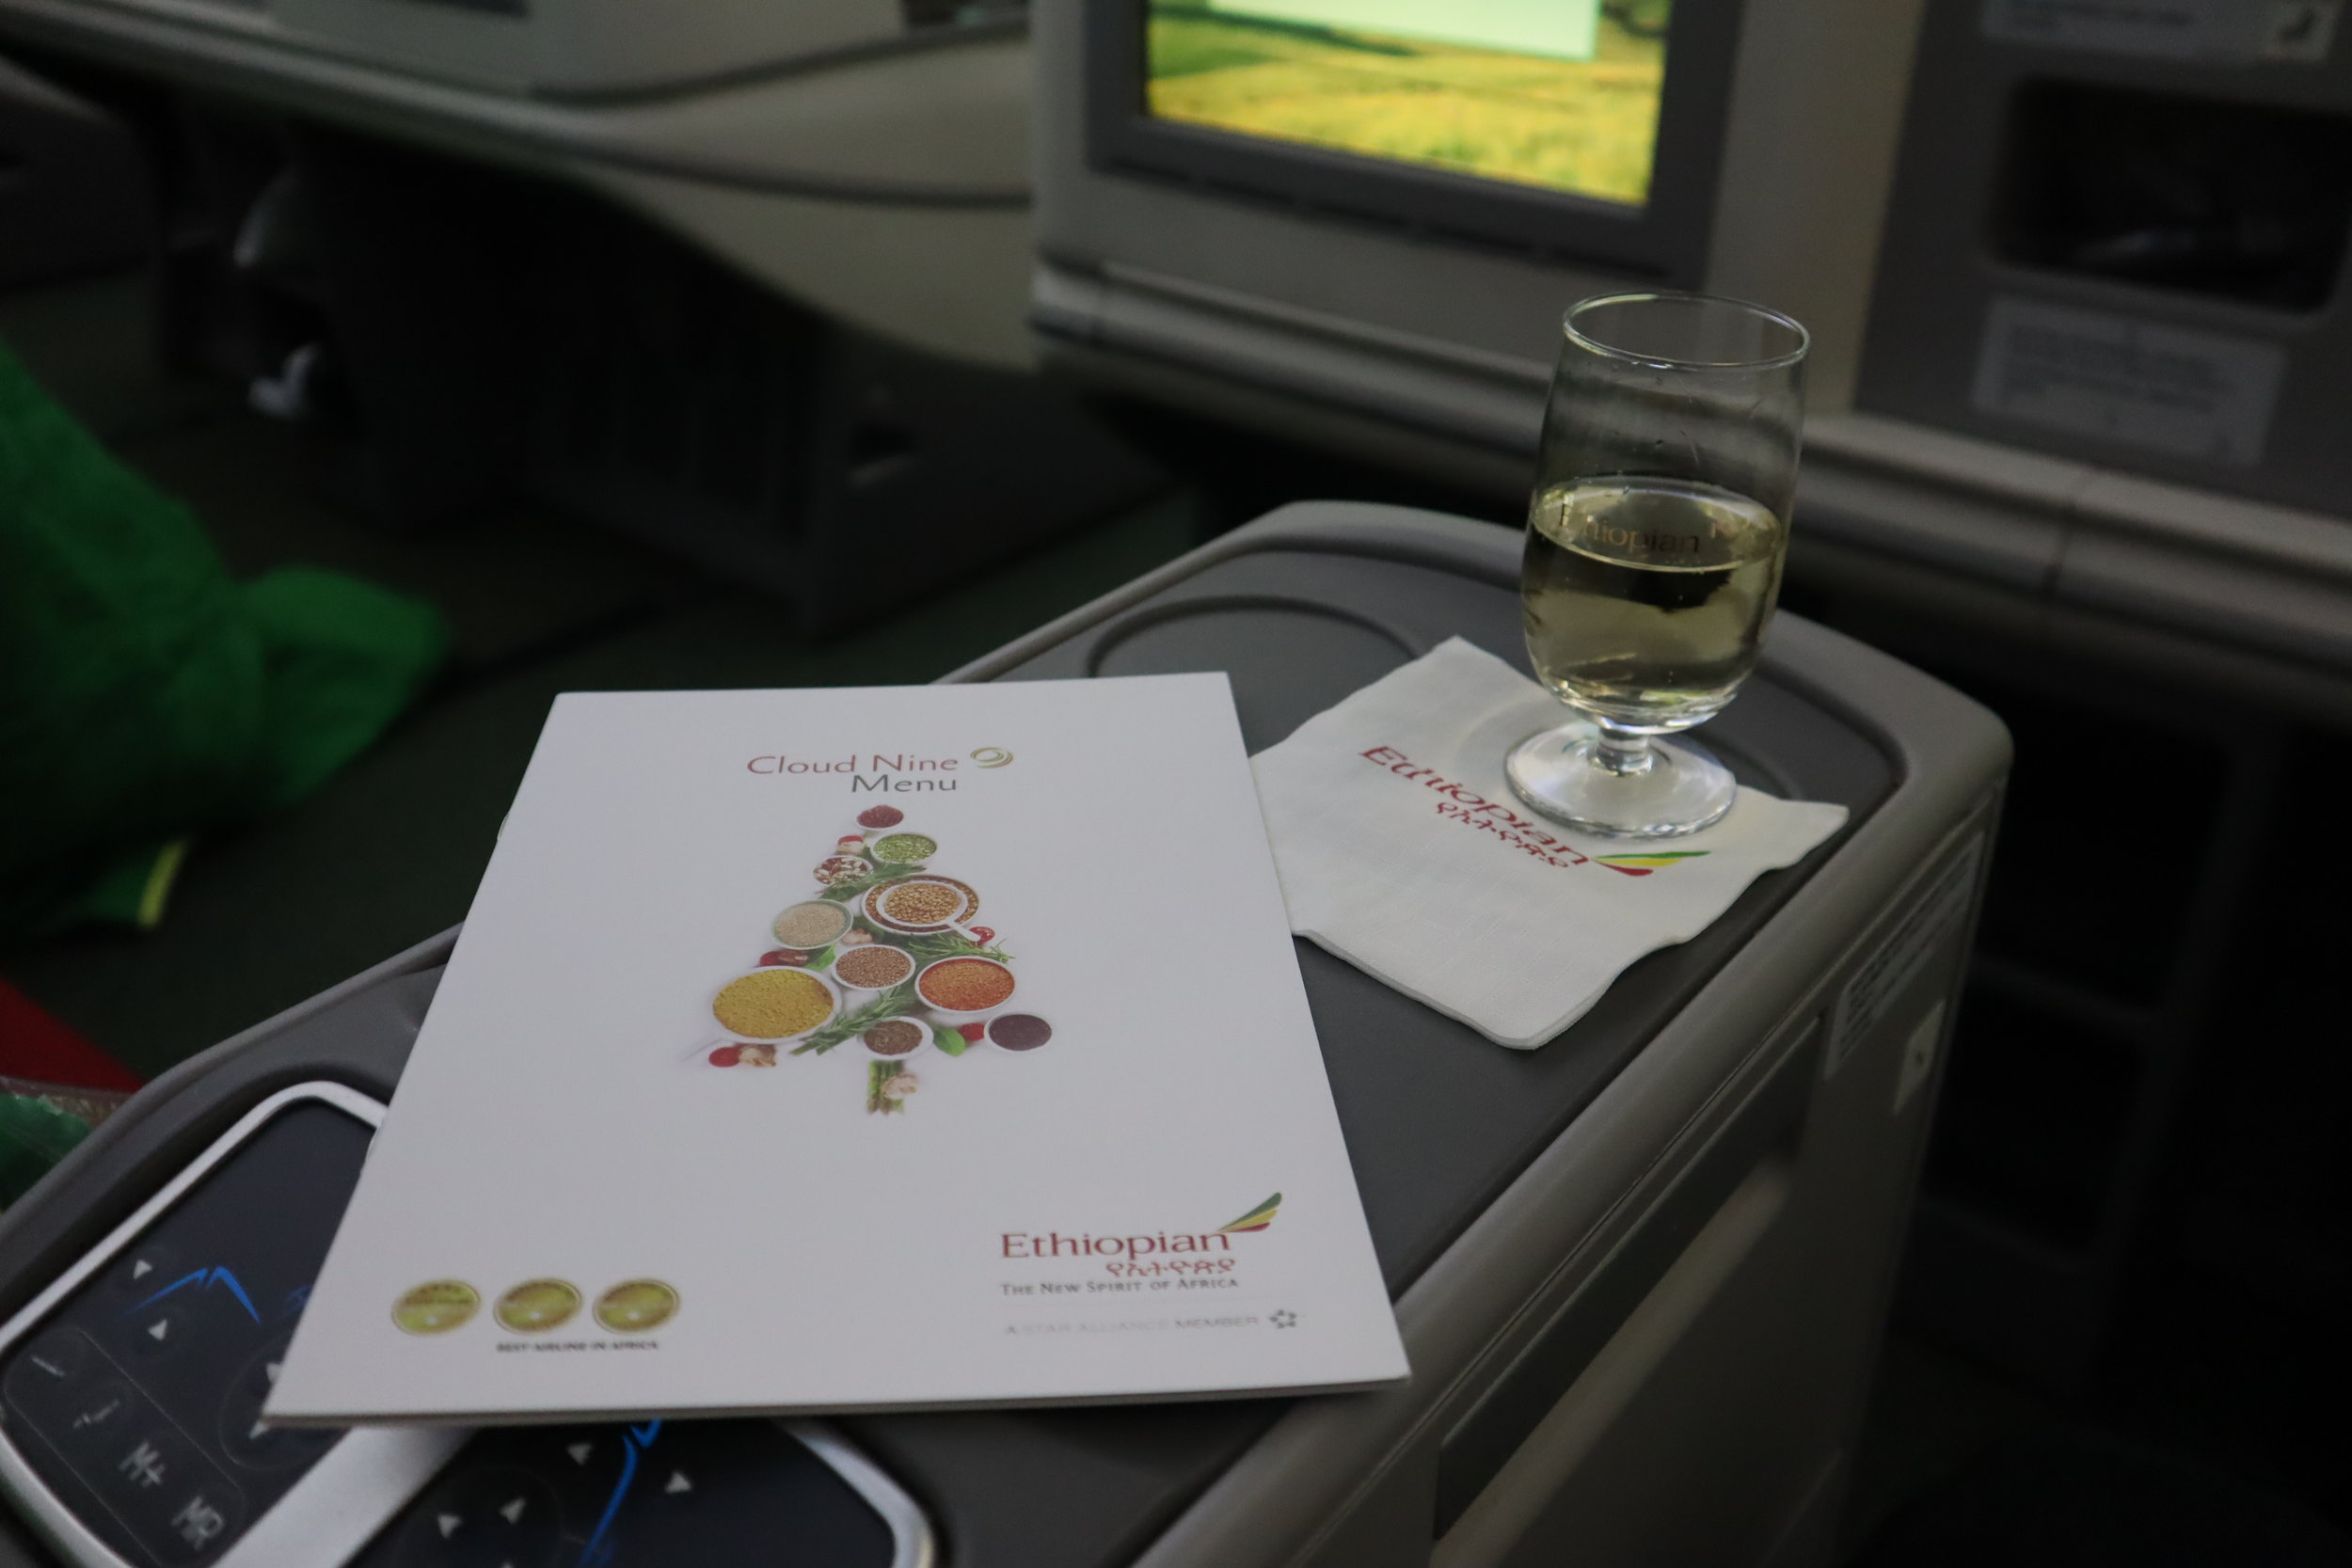 Ethiopian Airlines business class – Welcome drink and menu